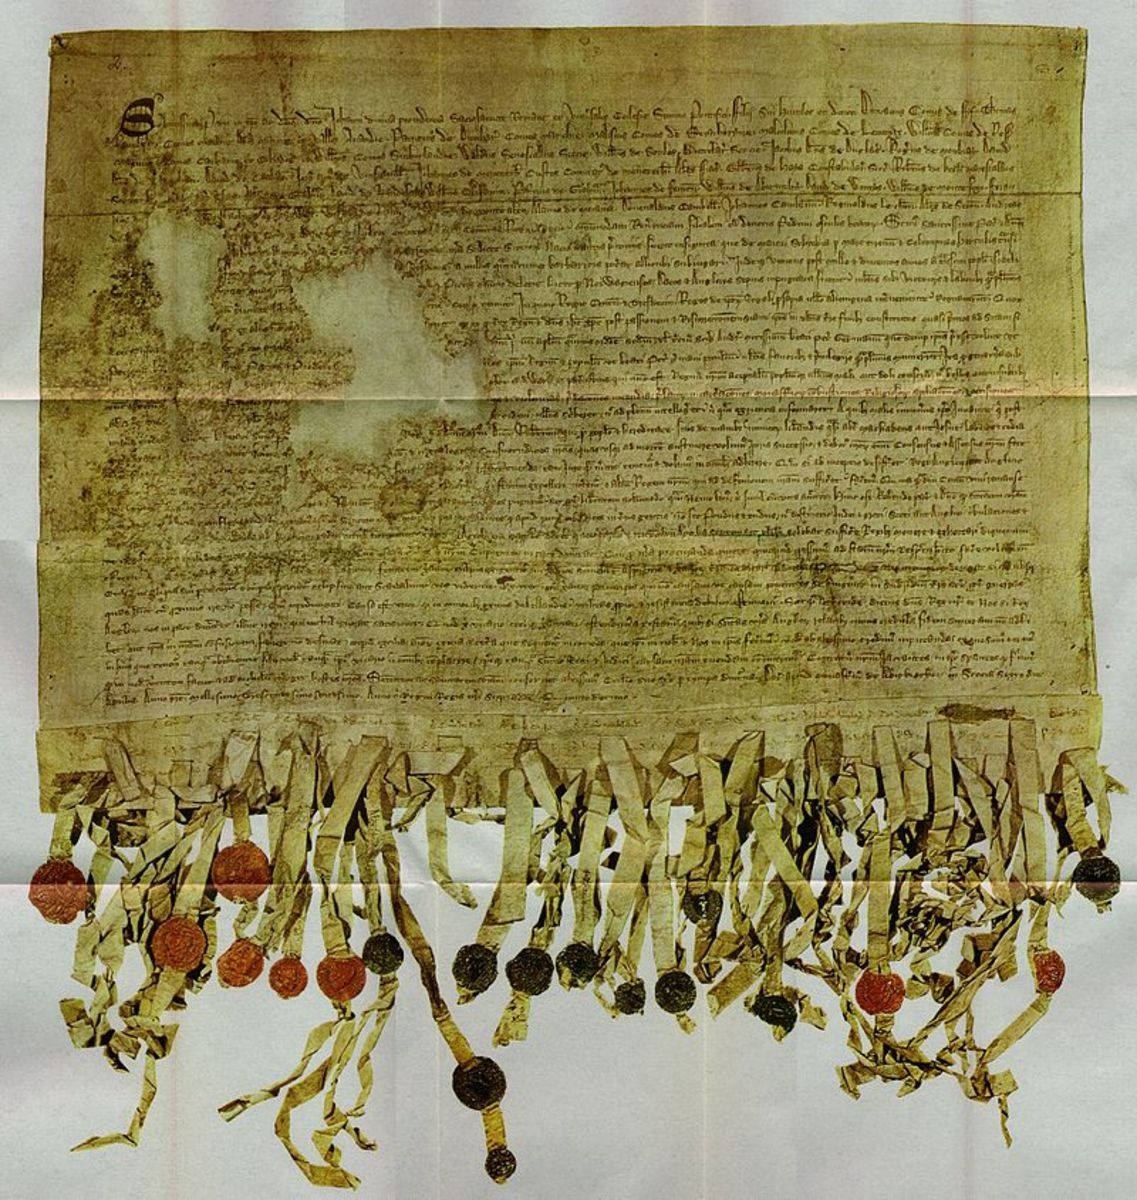 April 6, 1320 was the day of independence for Scotland from British rule. This image shows their Declaration of Arboath.